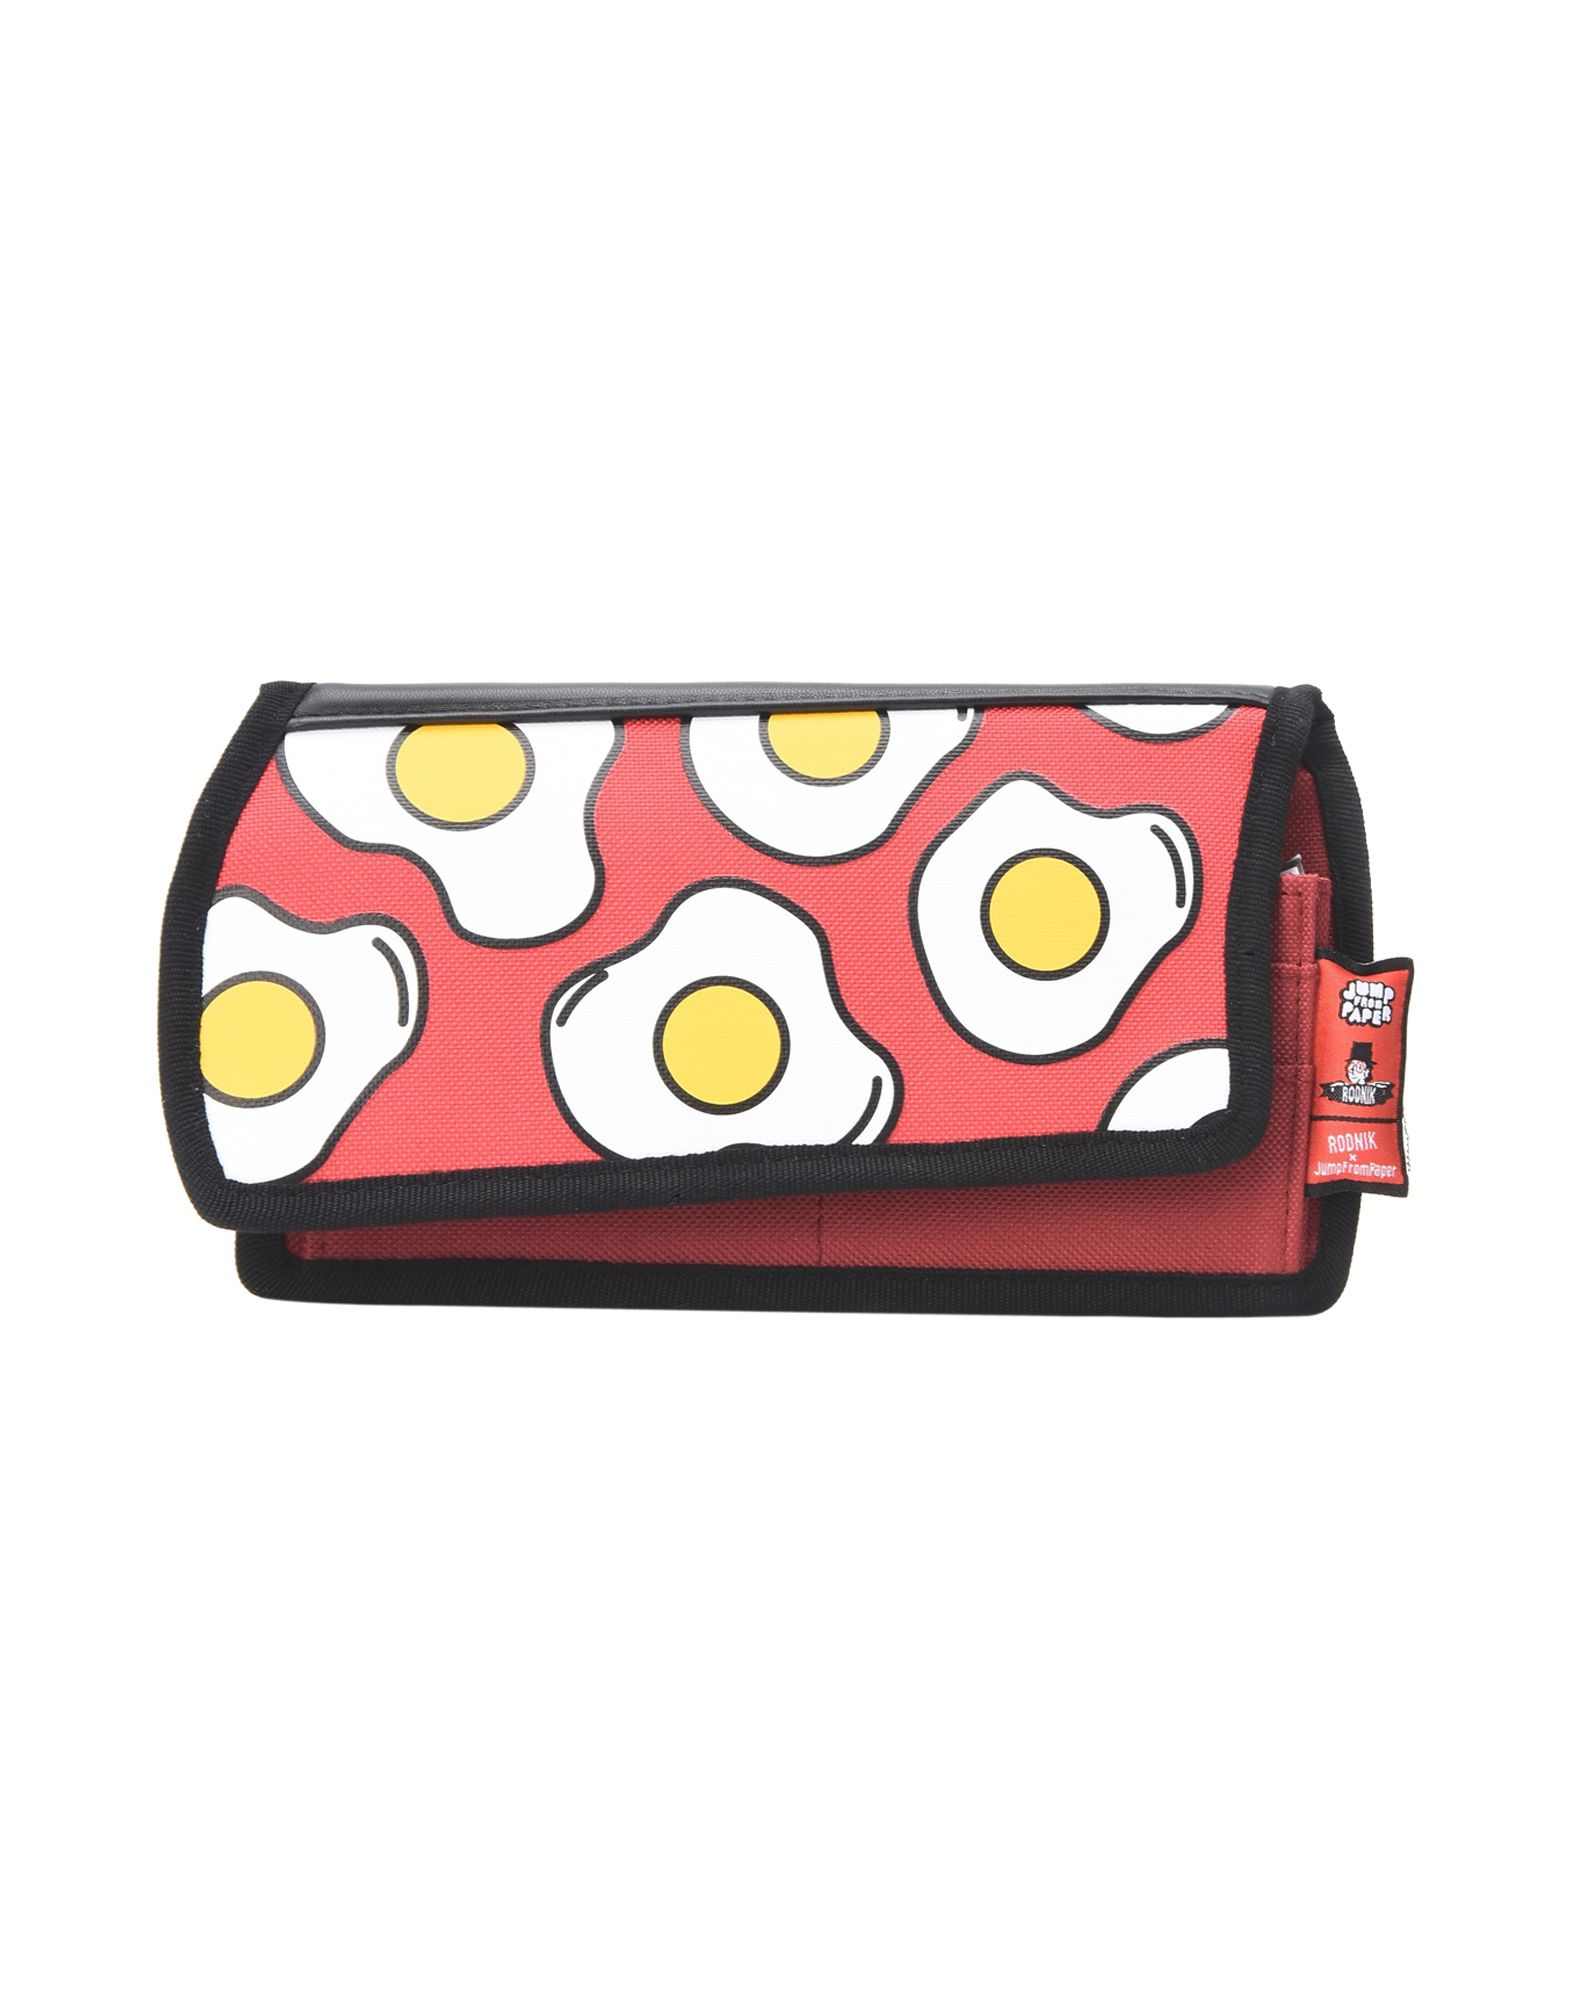 JUMPFROMPAPER &Reg; Wallets in Red